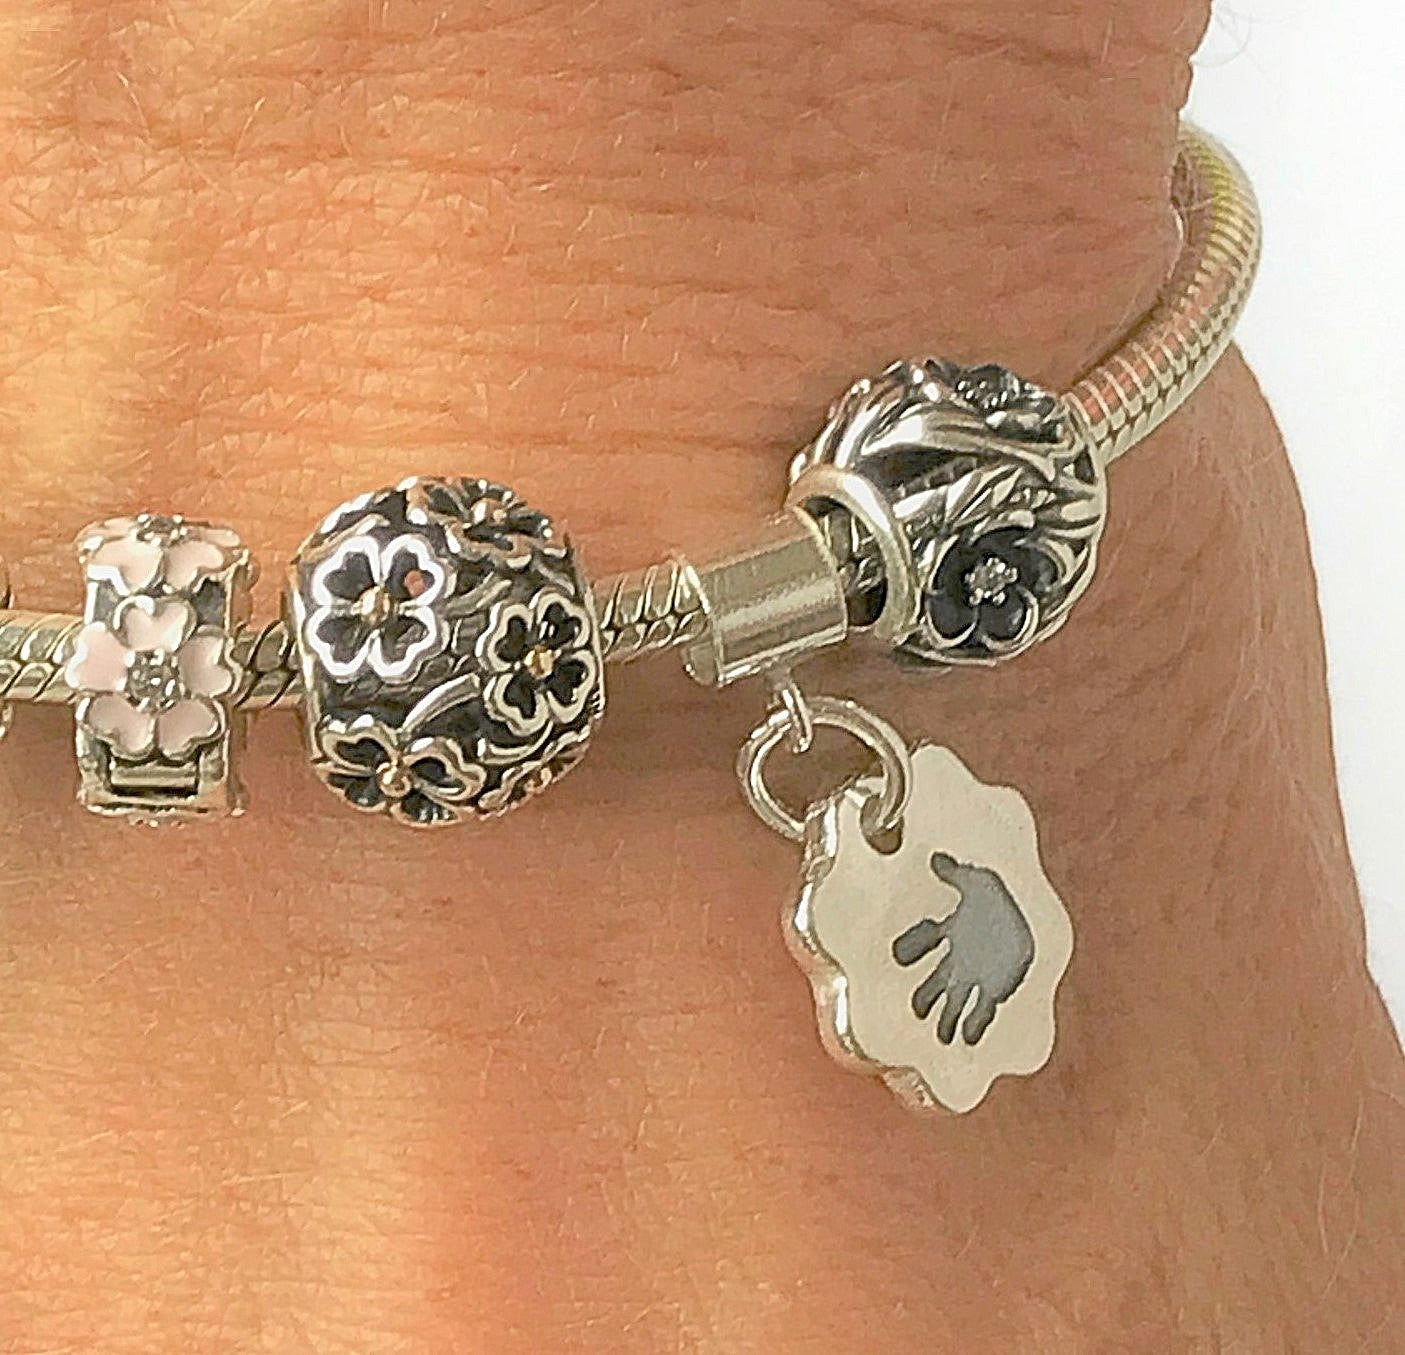 Lady wearing Bracelet Charm Sterling Silver Handprint Keepsake Jewellery